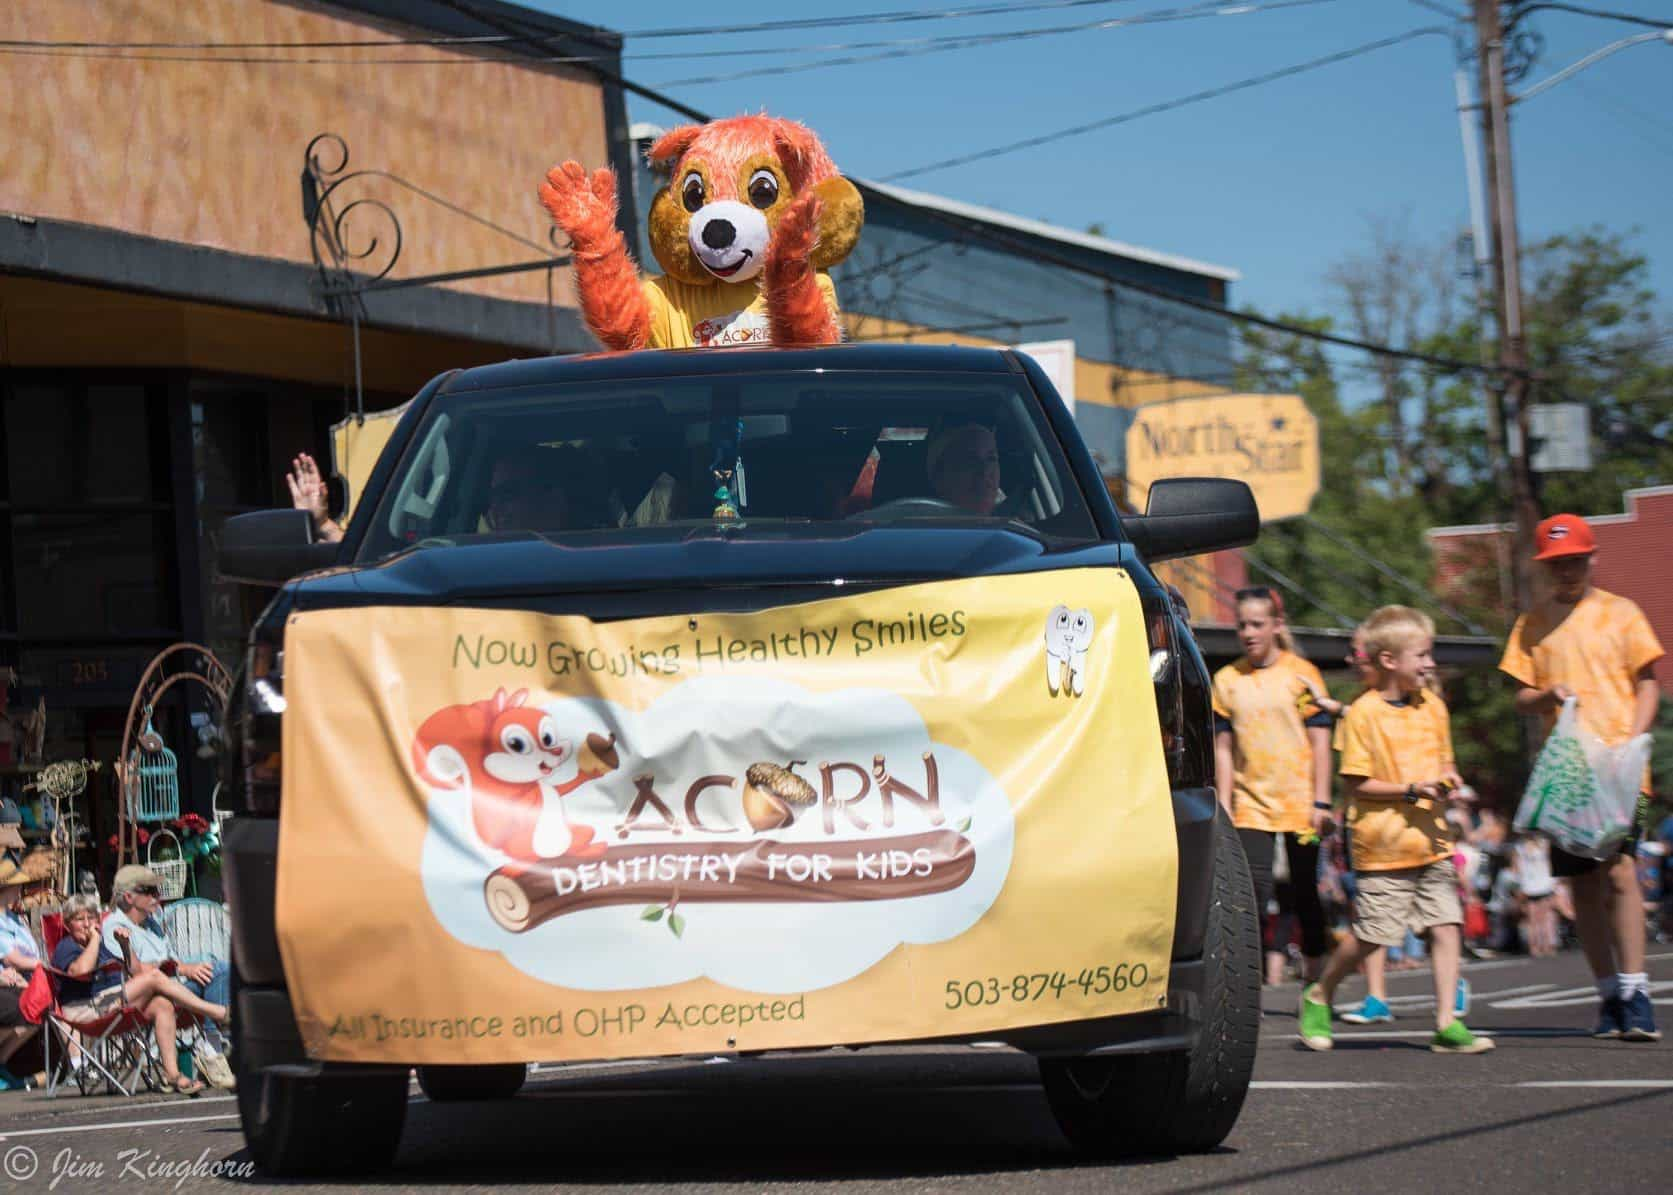 mascot in the back of a truck, promotional banner in the front